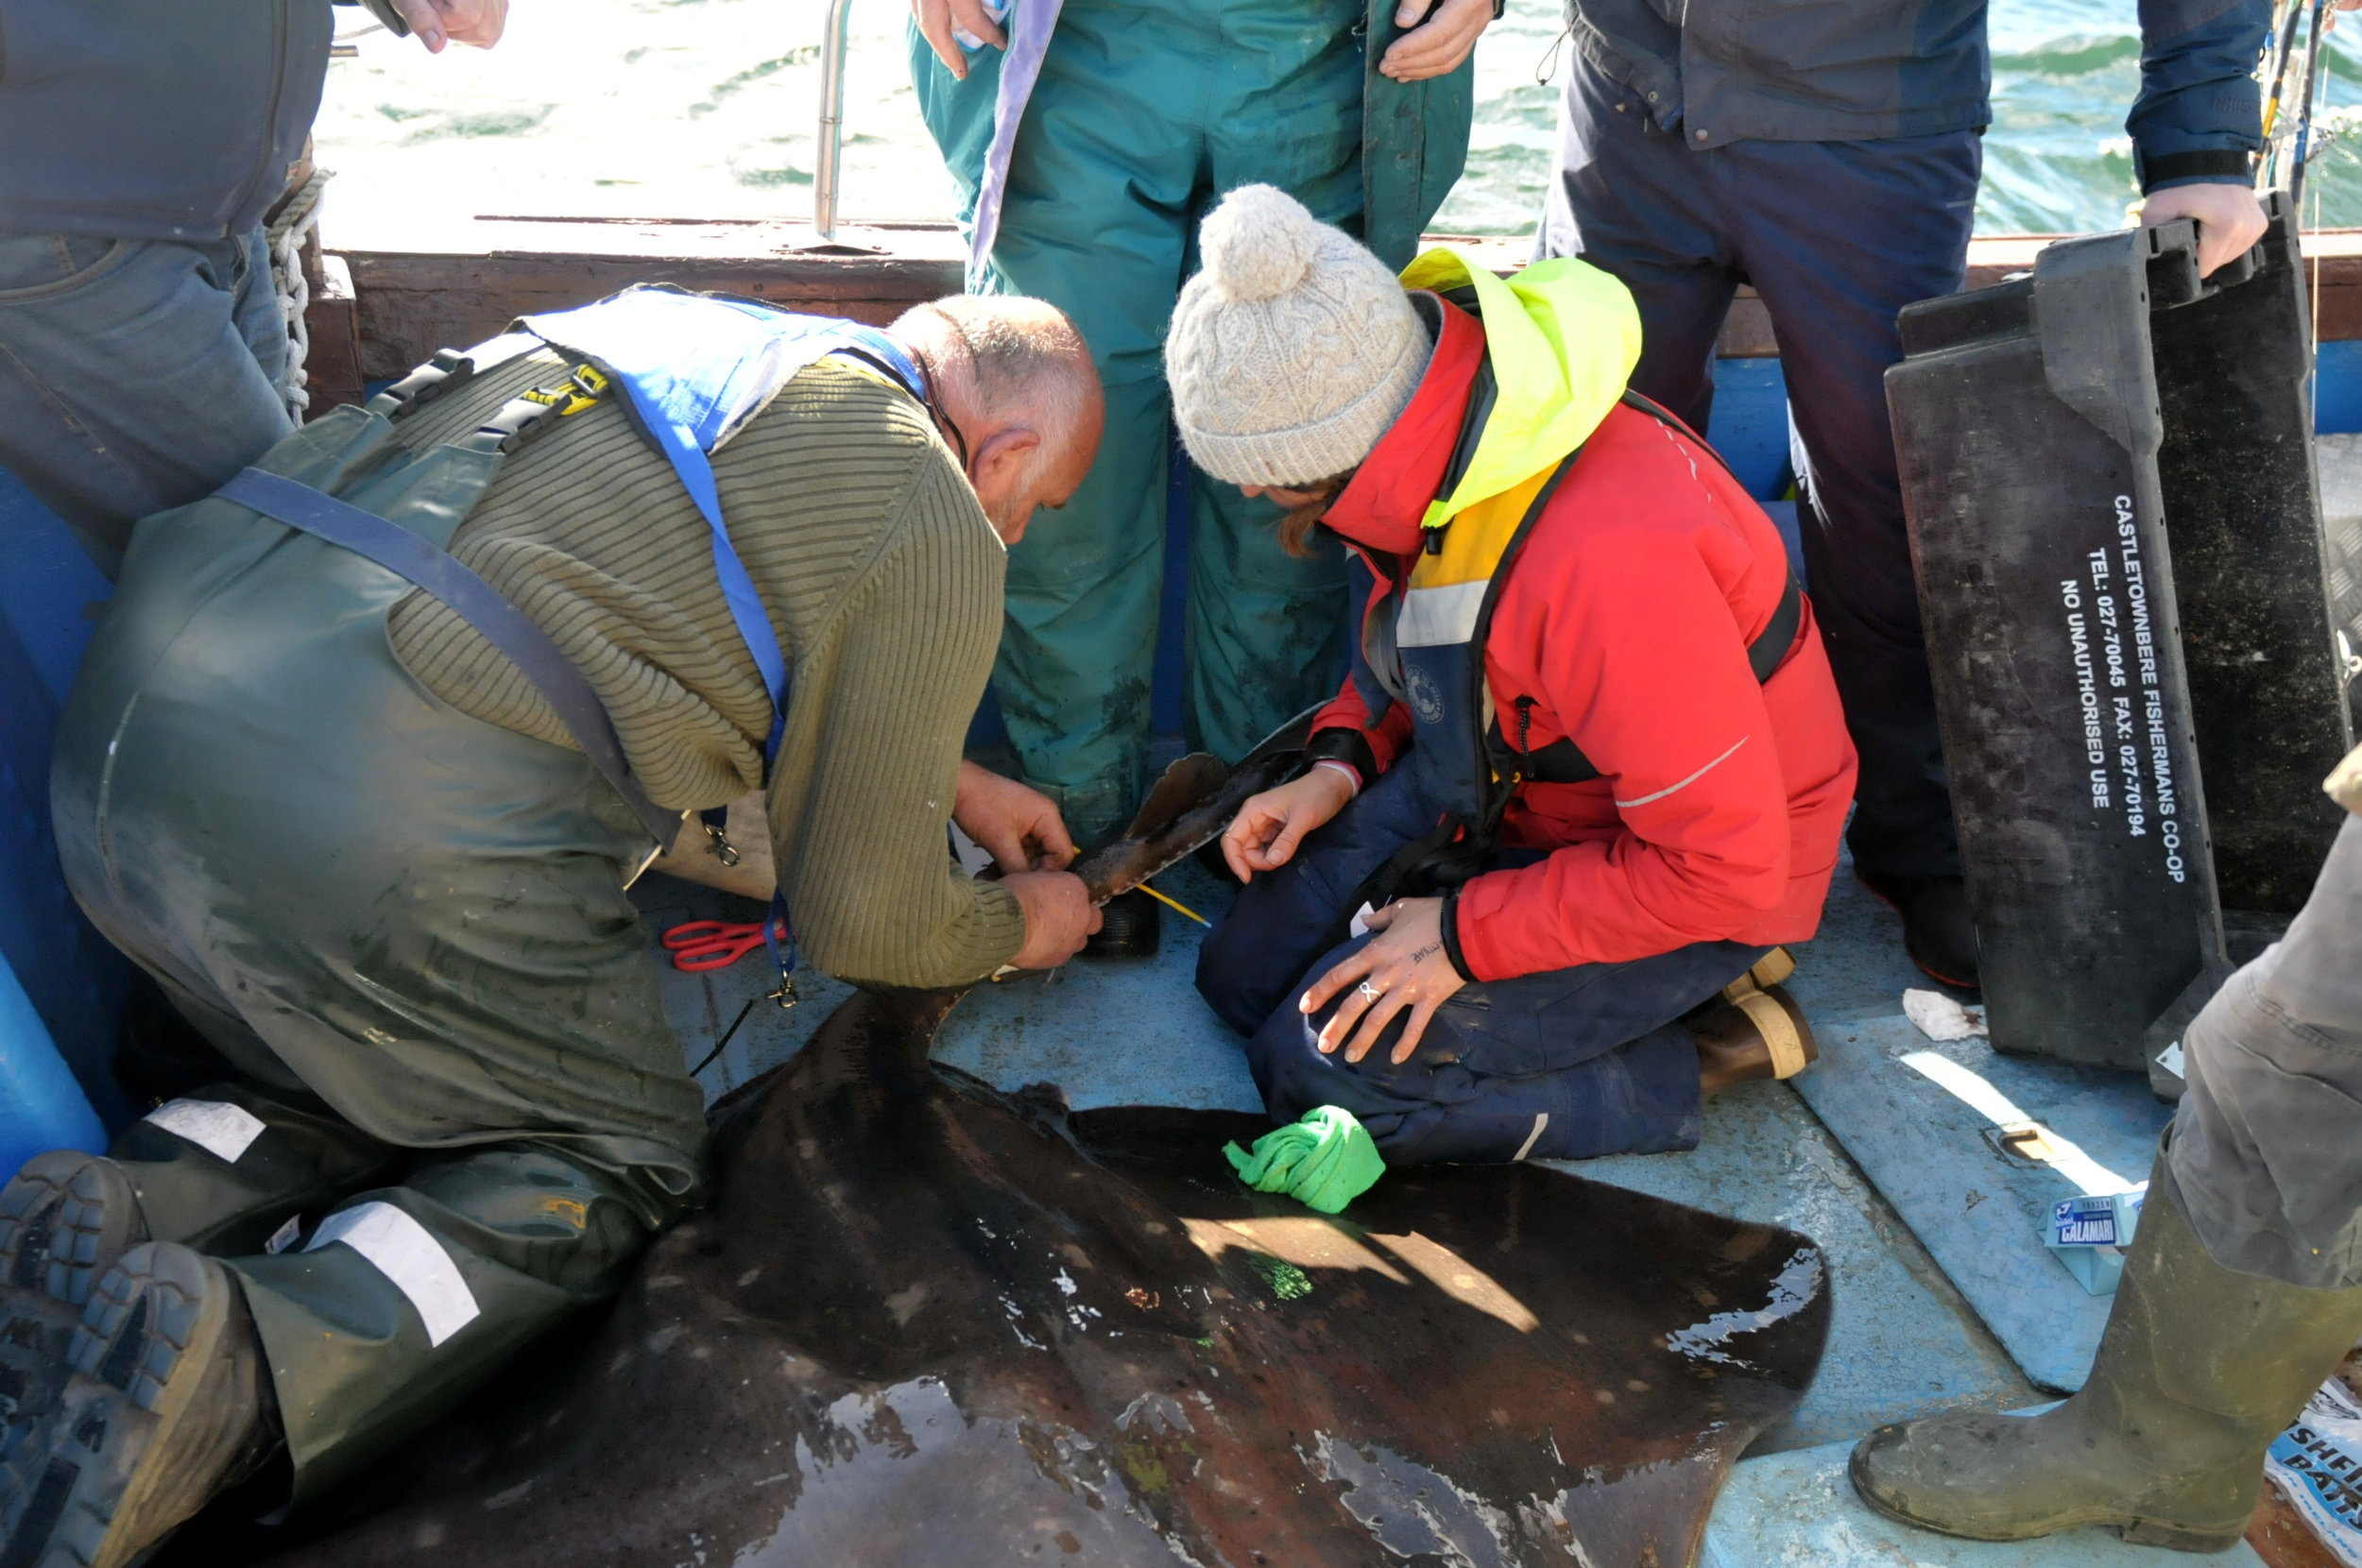 Declan helps with attaching the package while the rest of the fishermen look on.  Photo: John O'Connor.